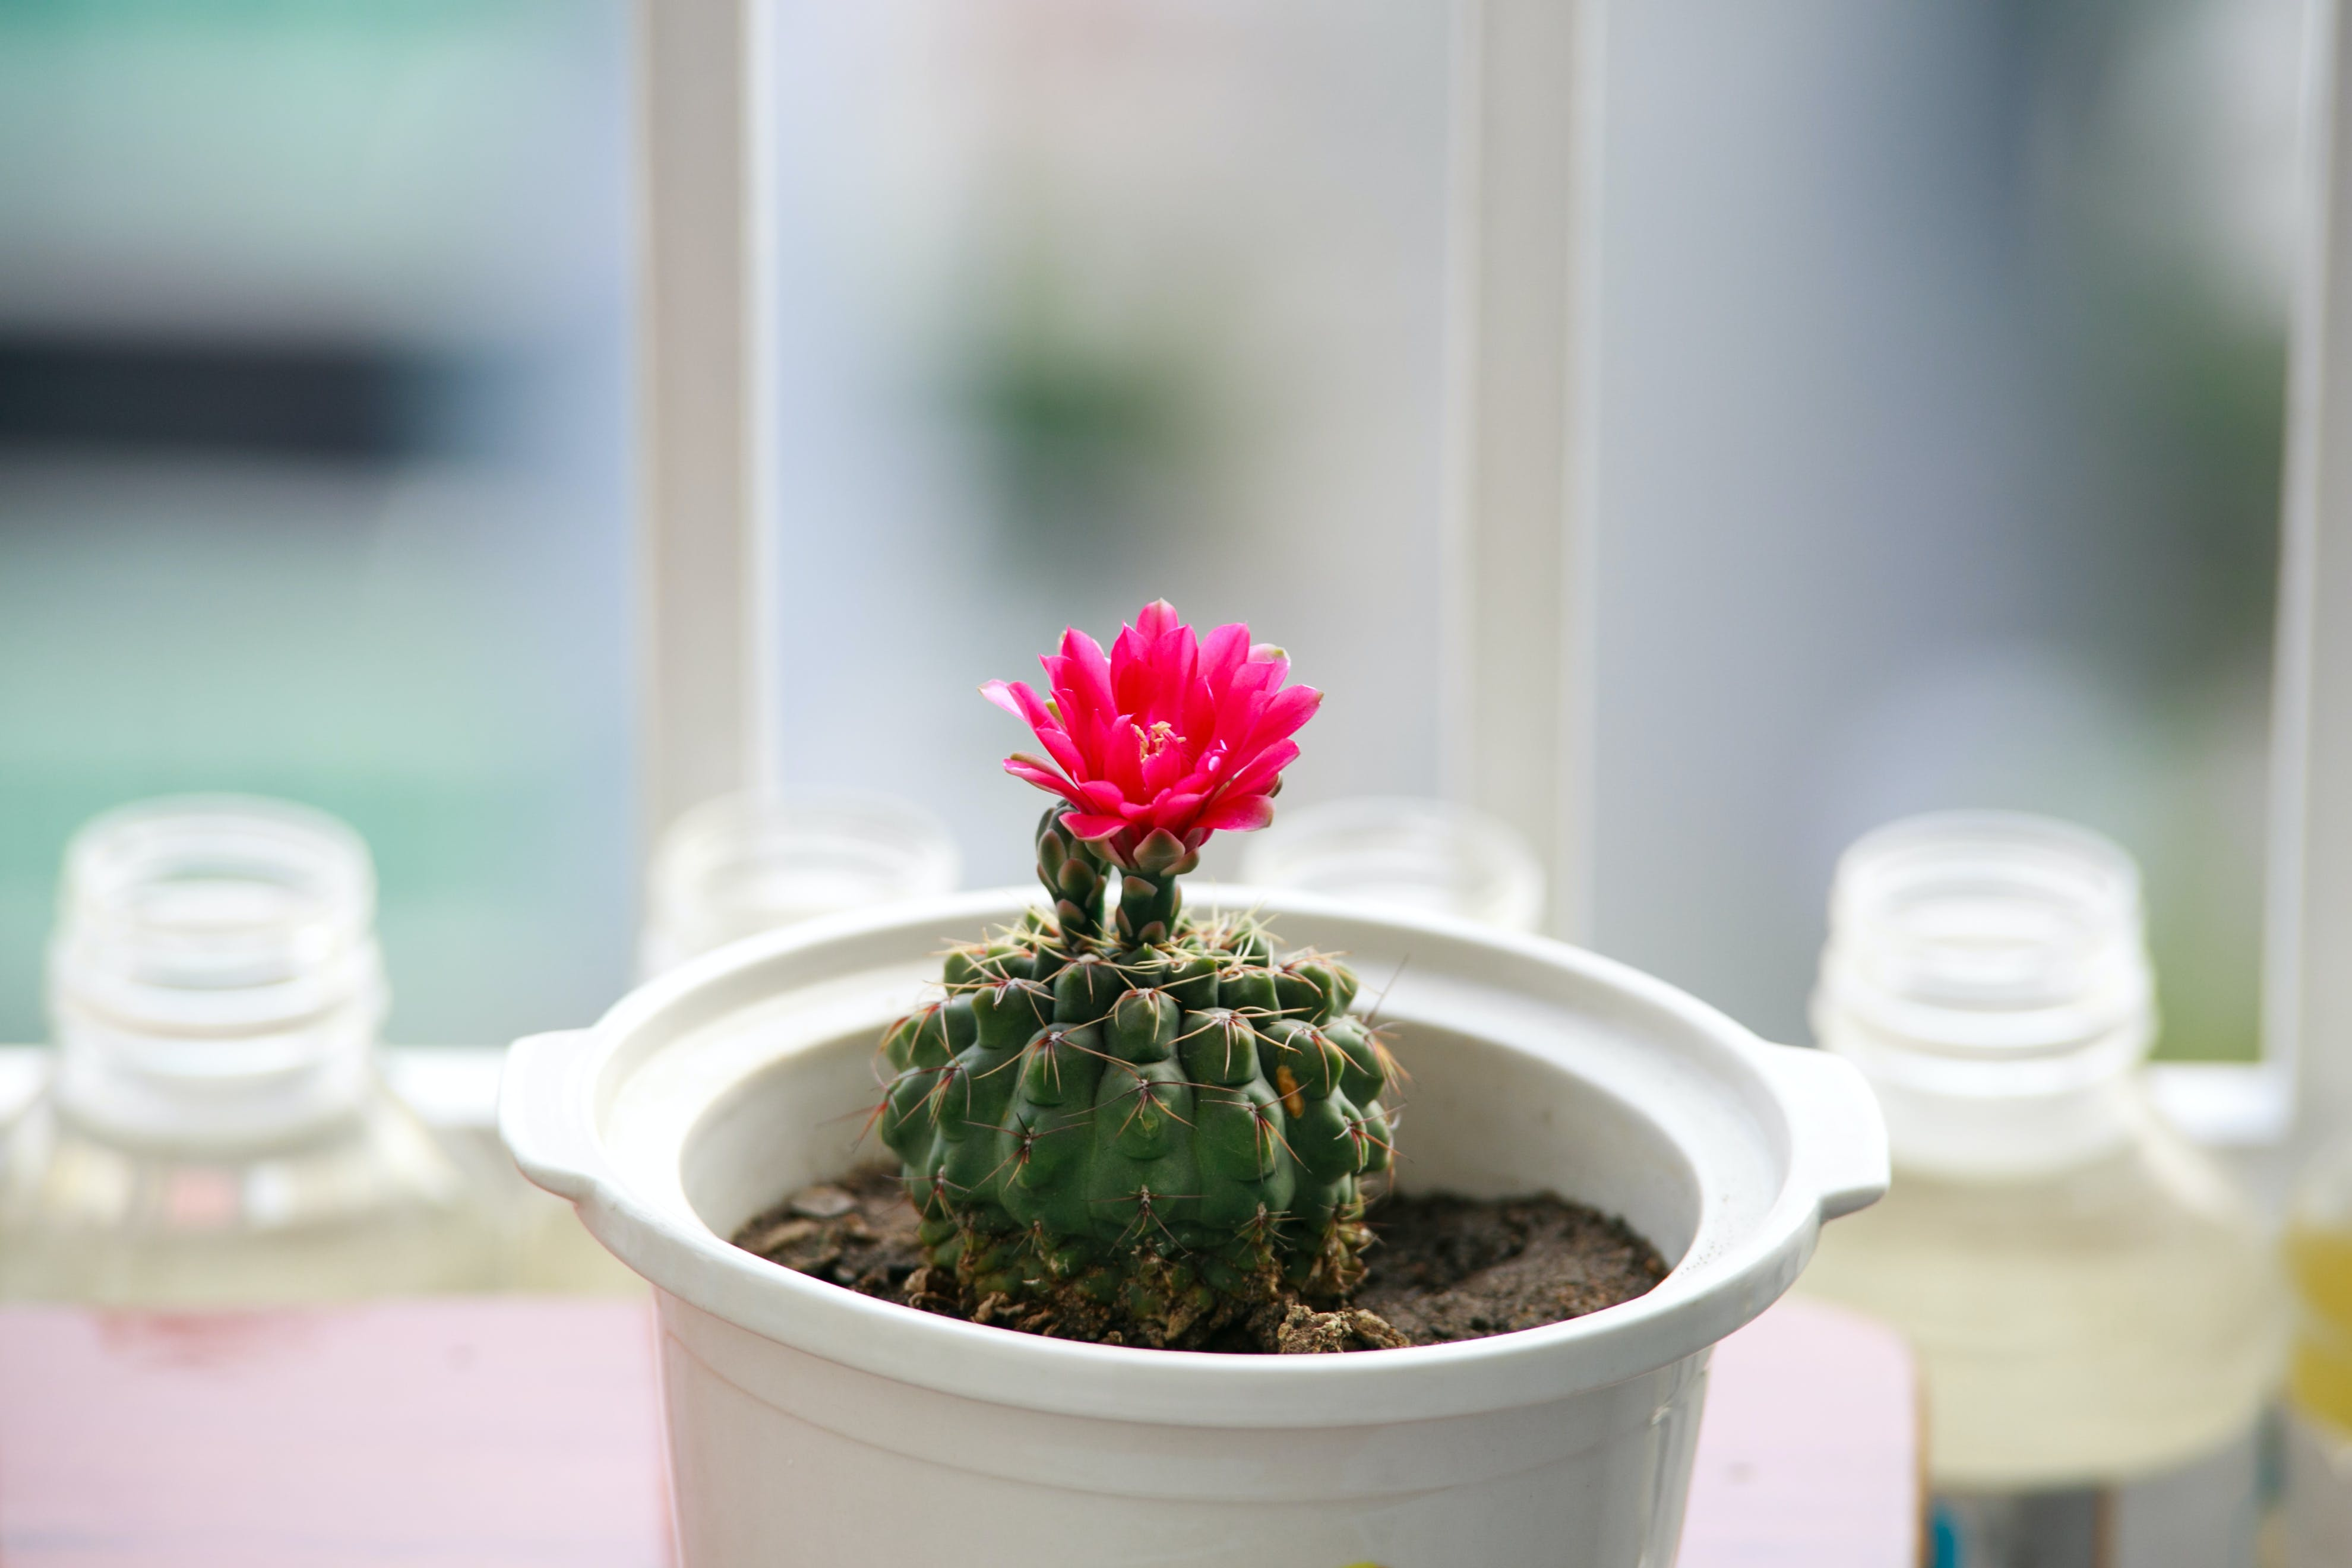 Green Flowering Cactus Potted Plant